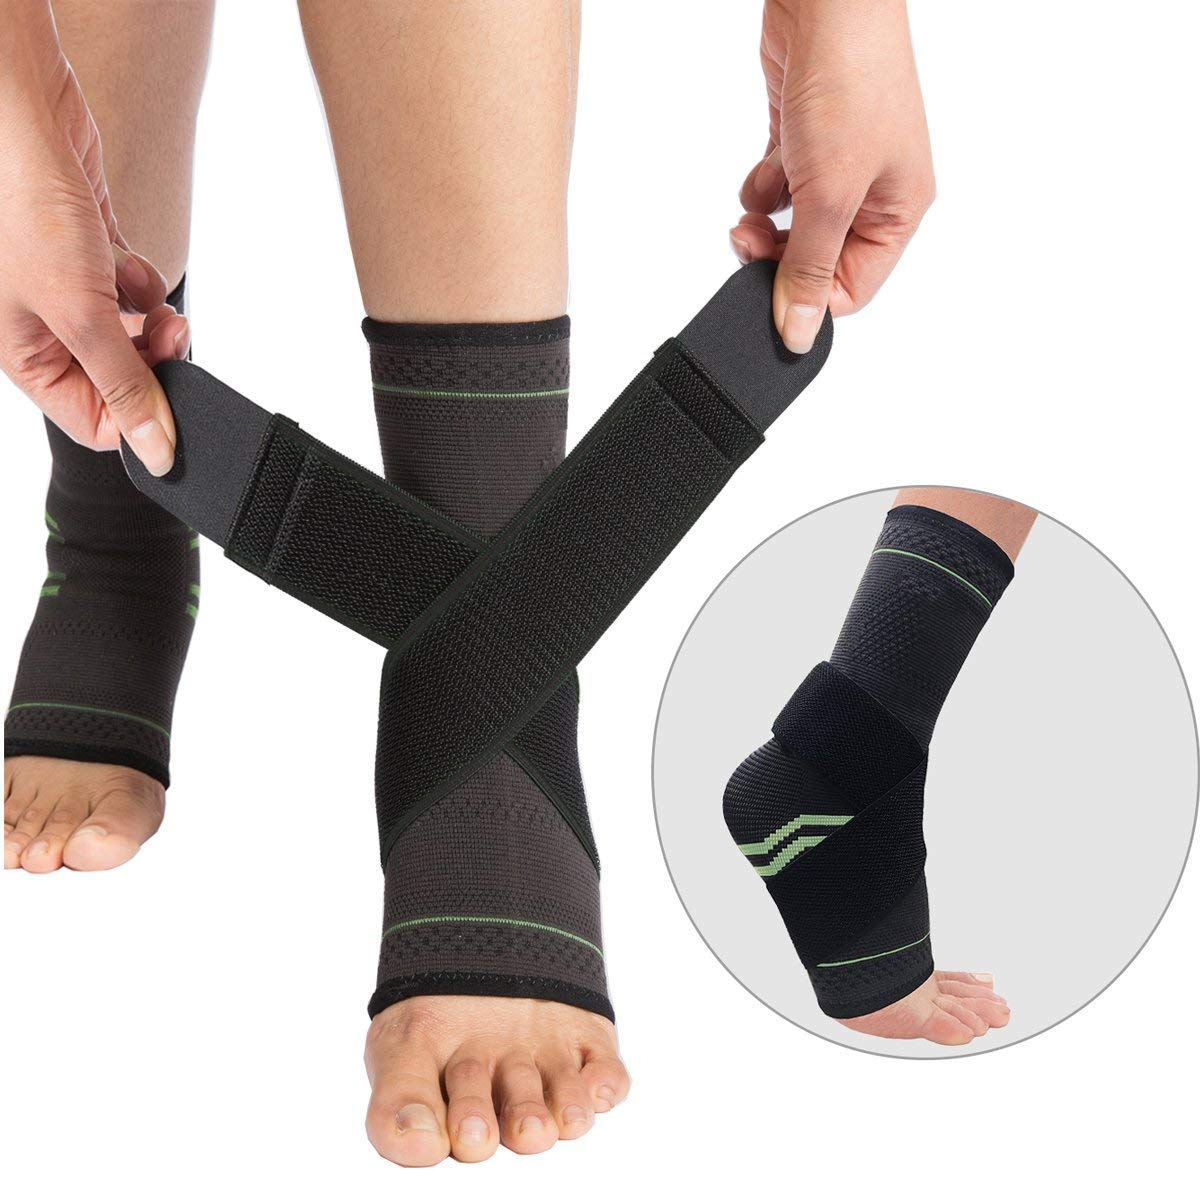 SWOLF 1 Pair Plantar Fasciitis Compression Socks Sleeves for Men & Women with Ankle Brace Strap for Support & Relief Arch Pain, Reduce Foot Swelling, Eases Achilles Tendonitis & Heel Spurs (Green, M)